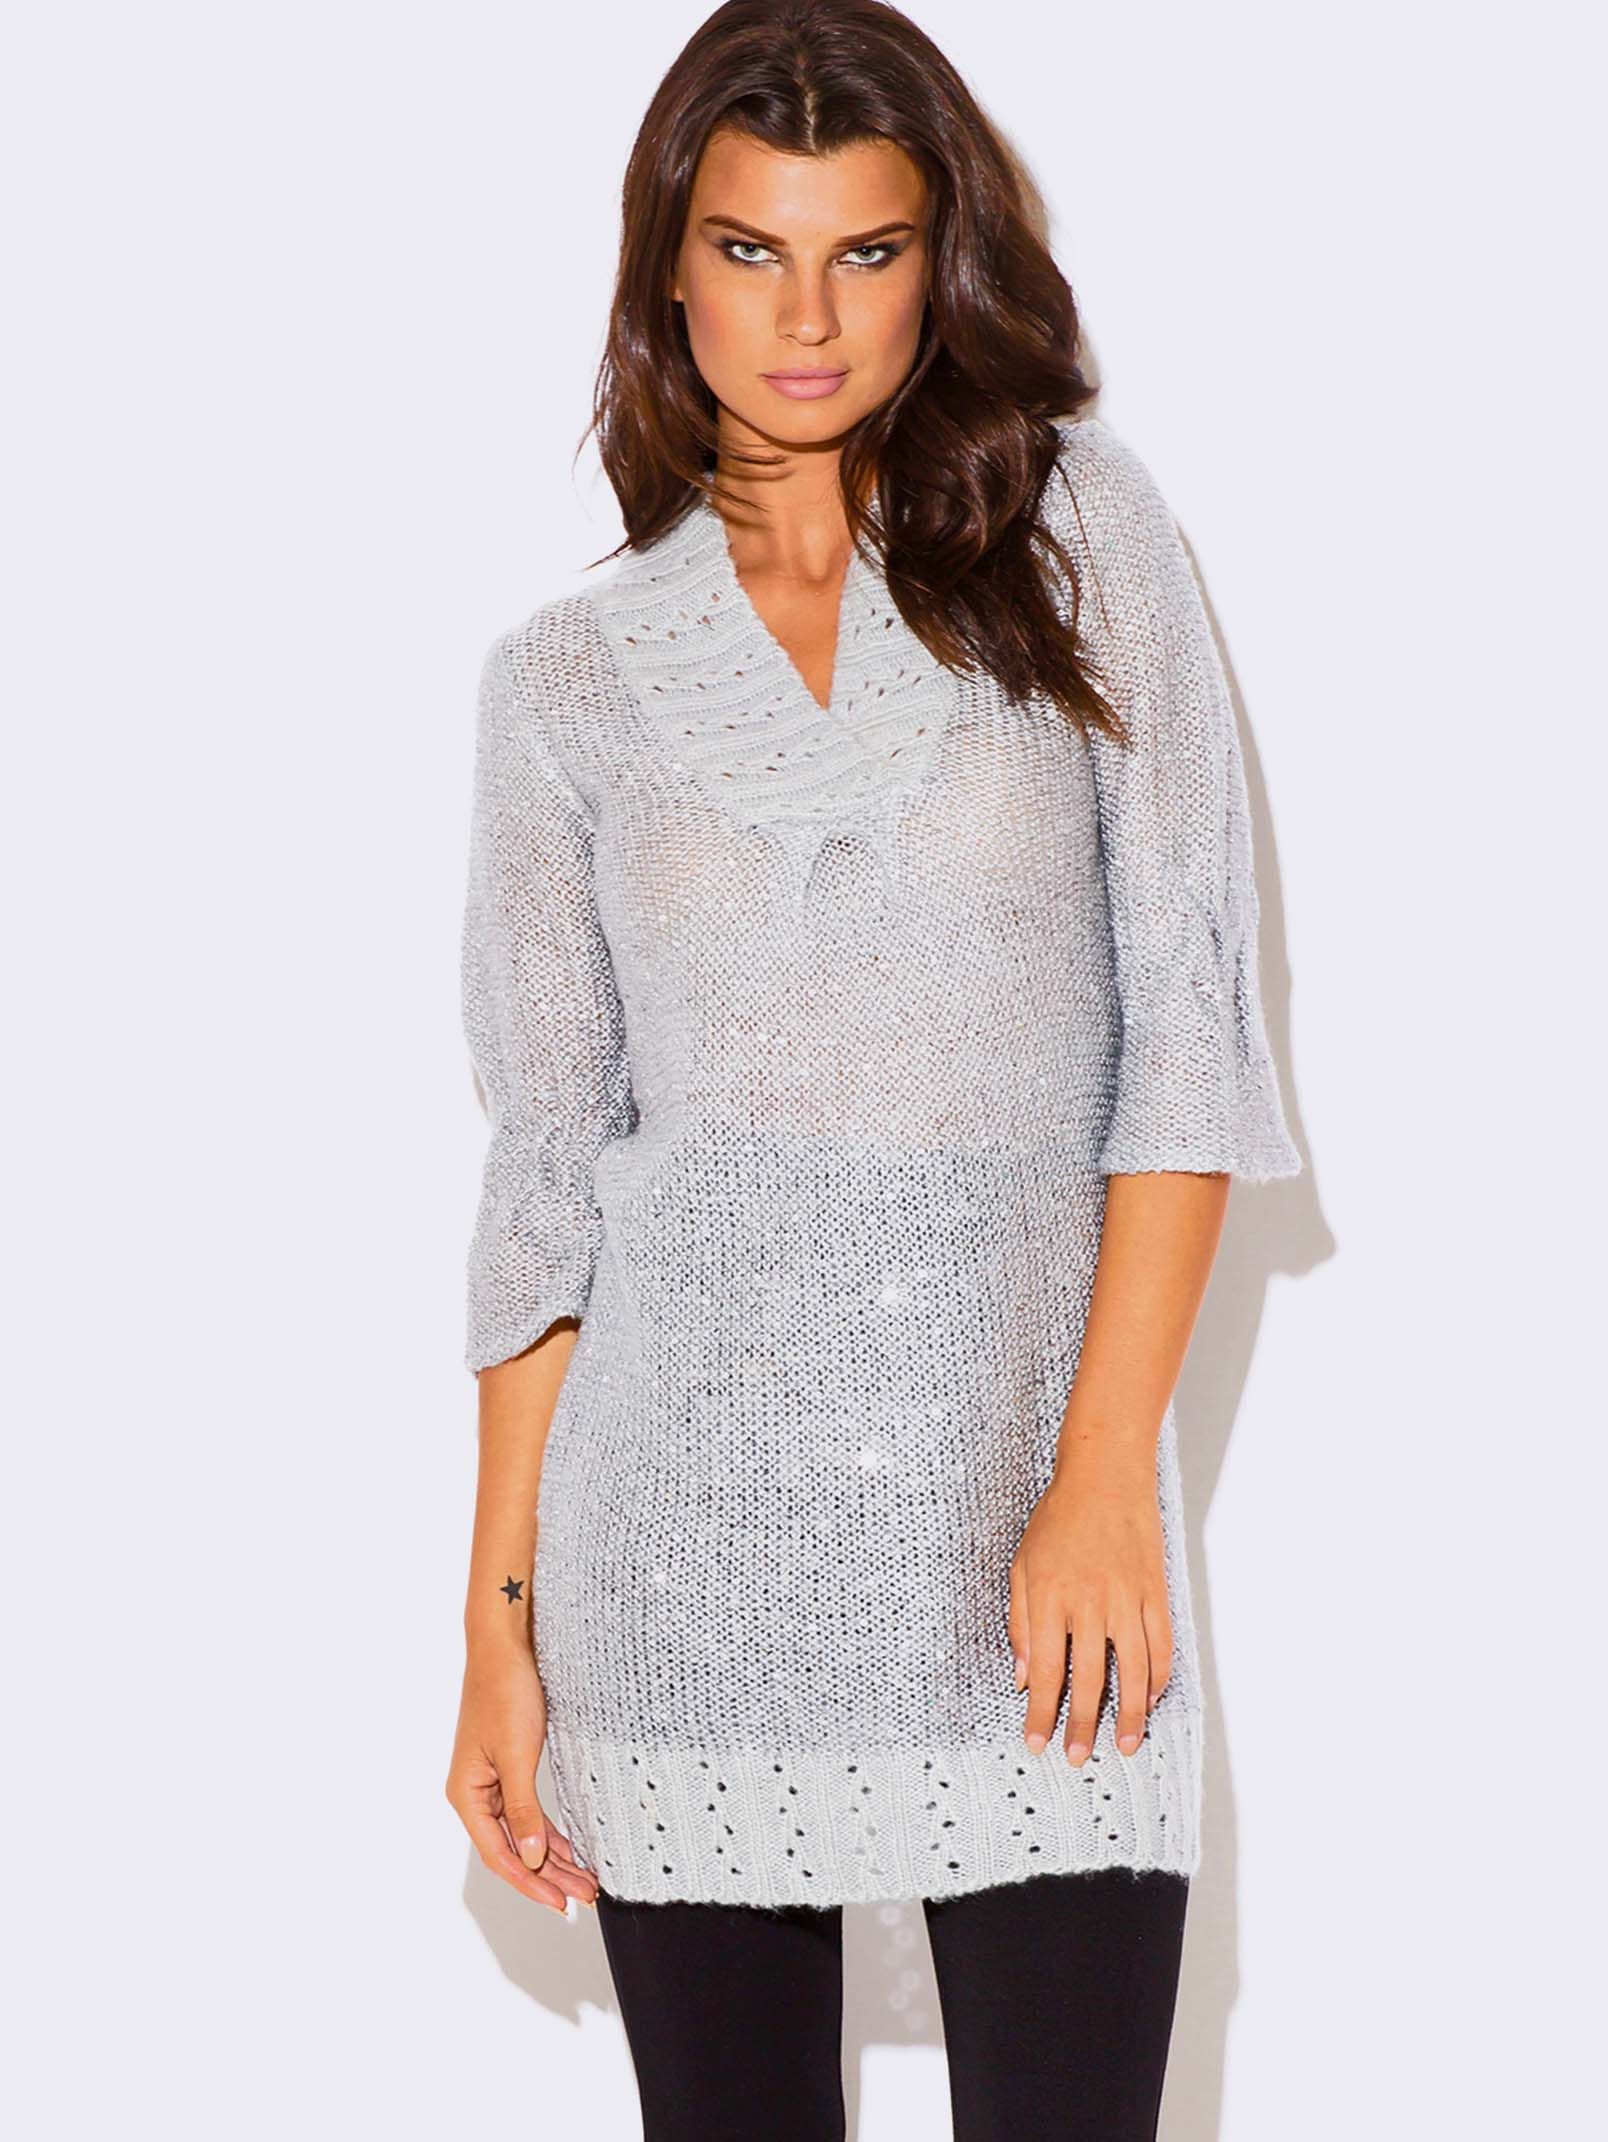 GRAY SEQUINED SWEATER DRESS